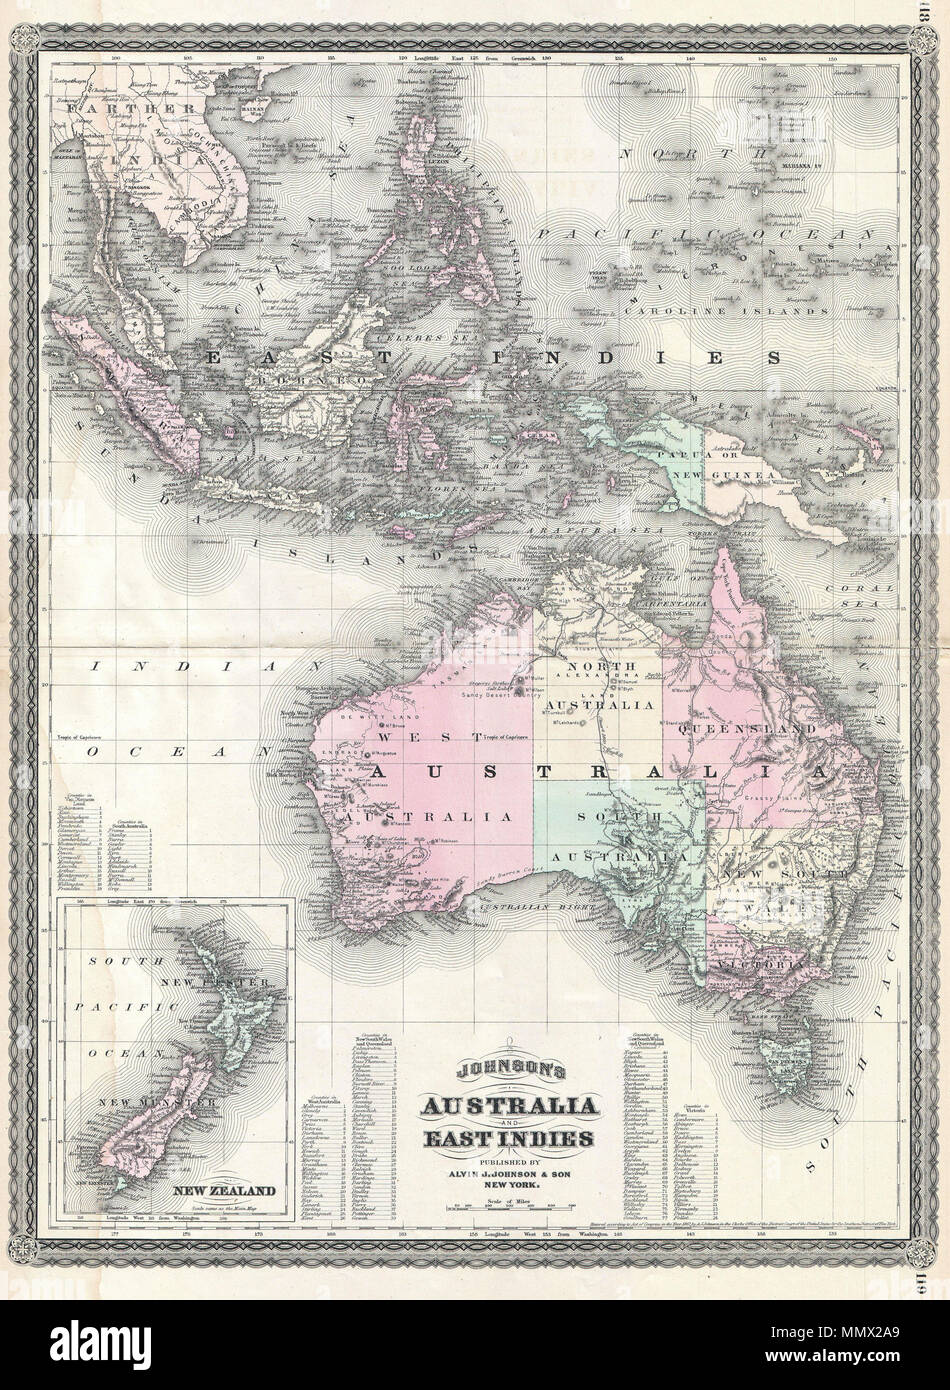 Map Of Southeast Asia Australia And New Zealand.English This Is A J Johnson S 1870 Map Of Australia The East